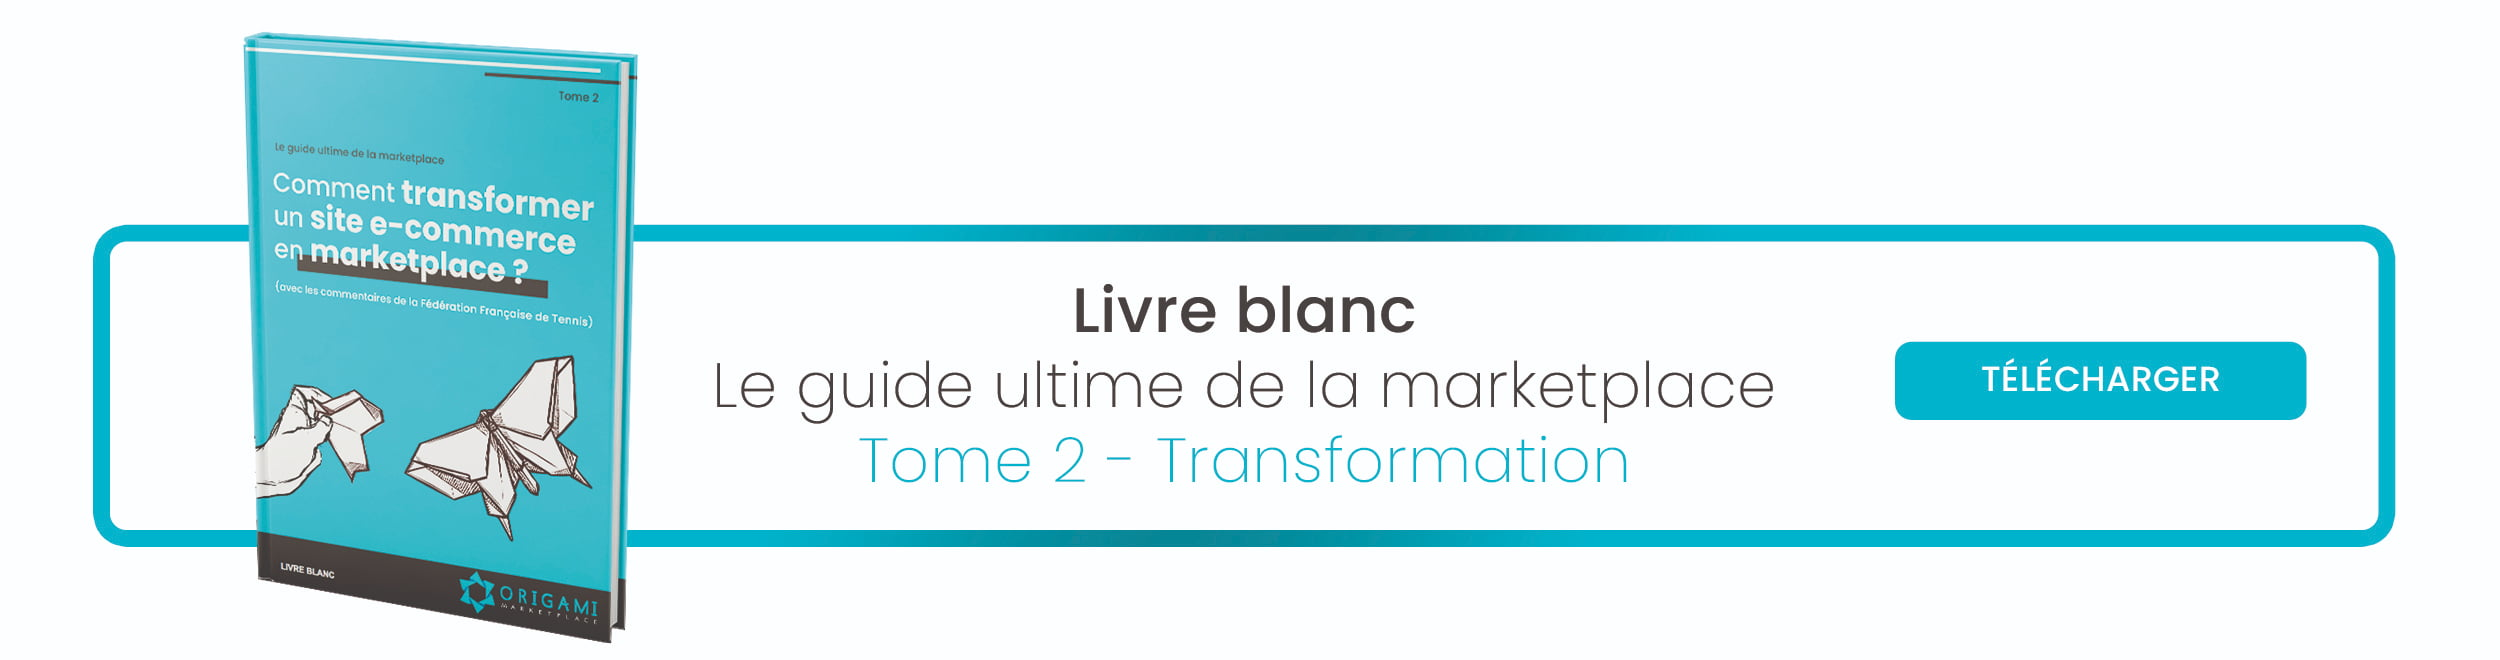 Livre blanc marketplace tome 2 transformation e-commerce